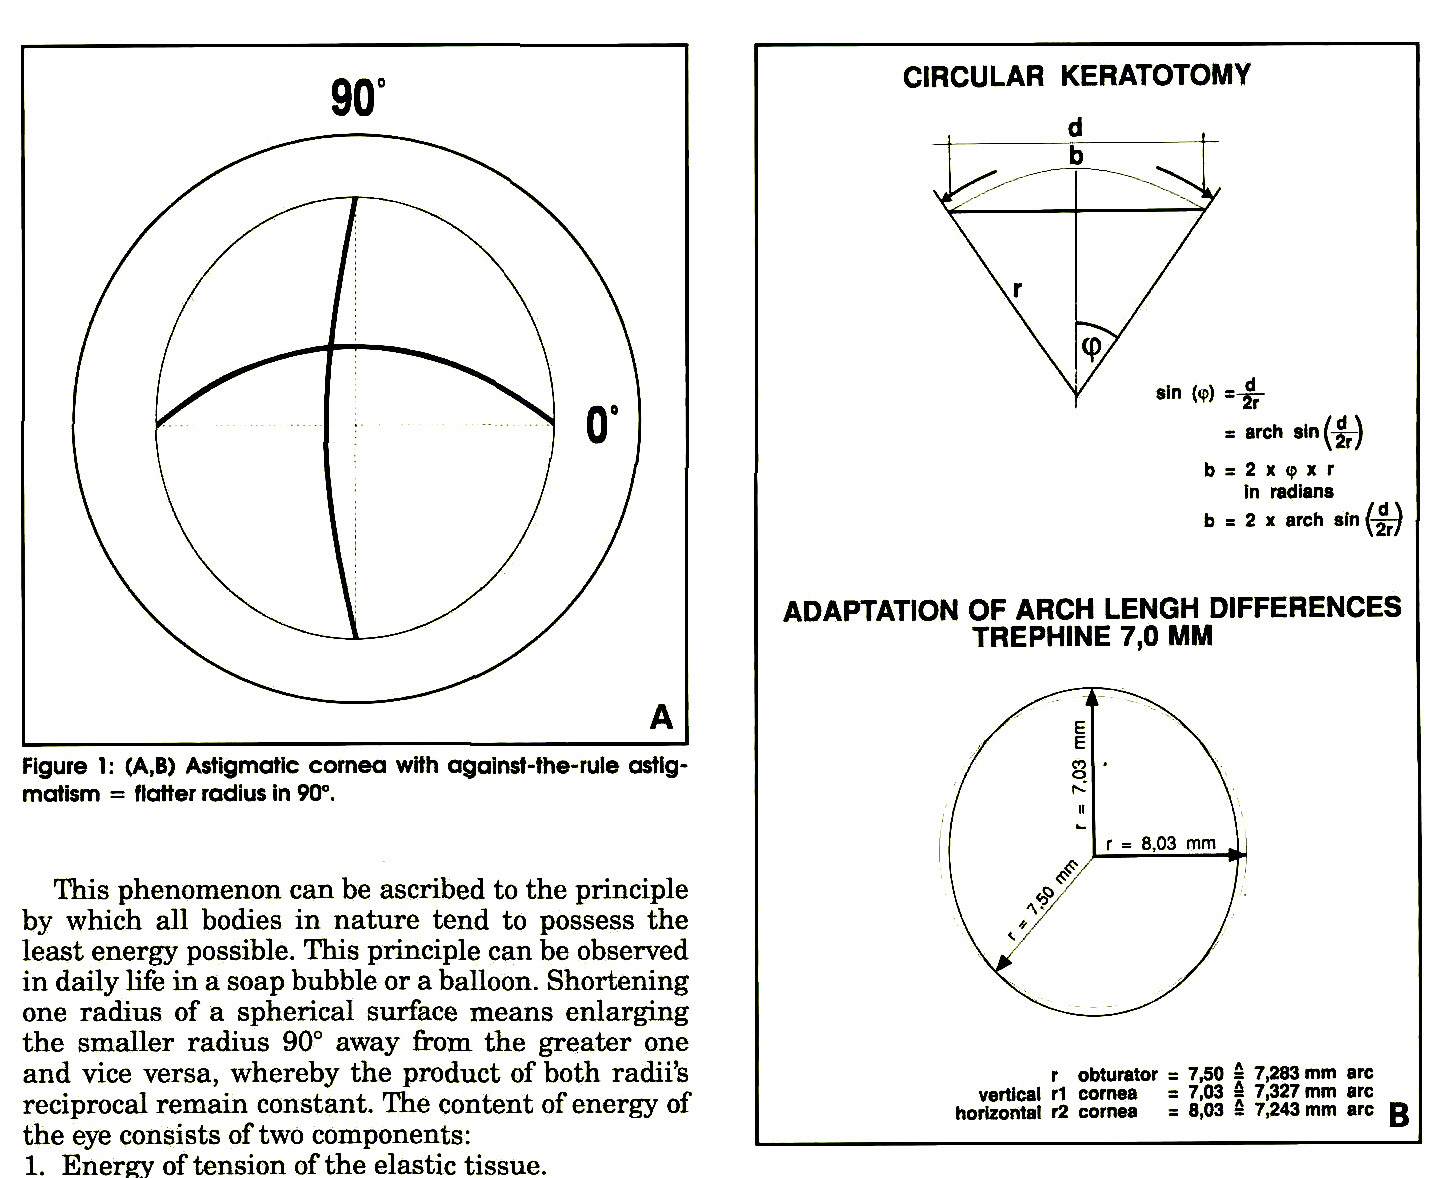 Figure 1: (A1B) Astigmatic comea with agalnst-the-rule astigmatism = Hatter radius in 90°.